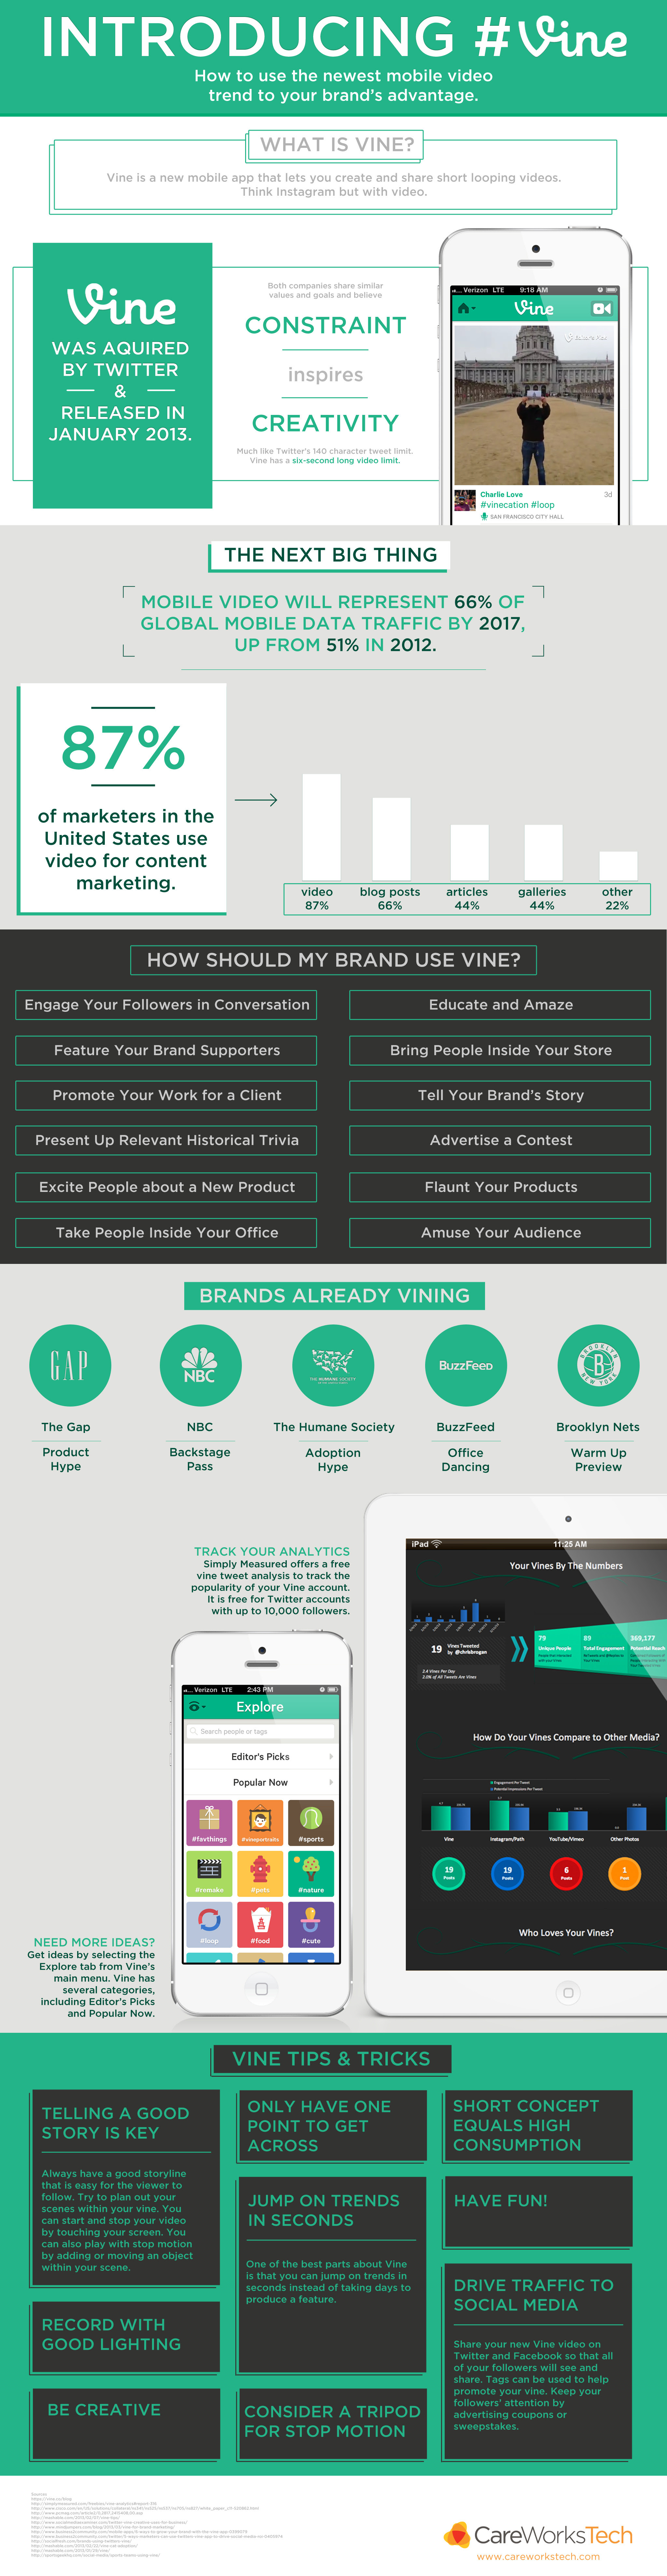 How to use the newest mobile video trend (vine) to your brand's advantages - infographic